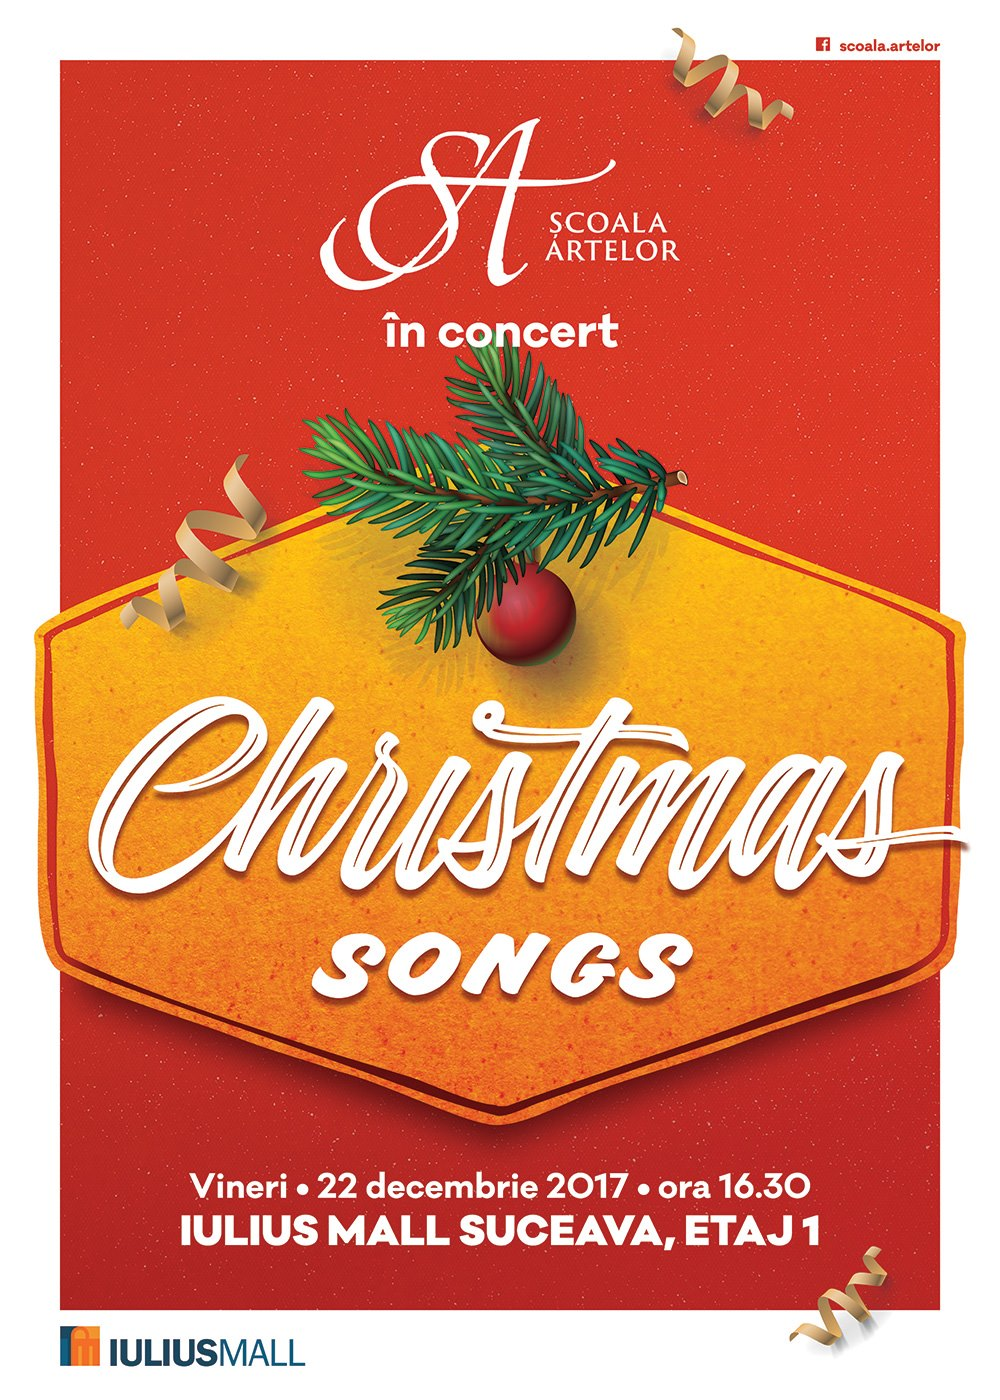 Chritmas Songs